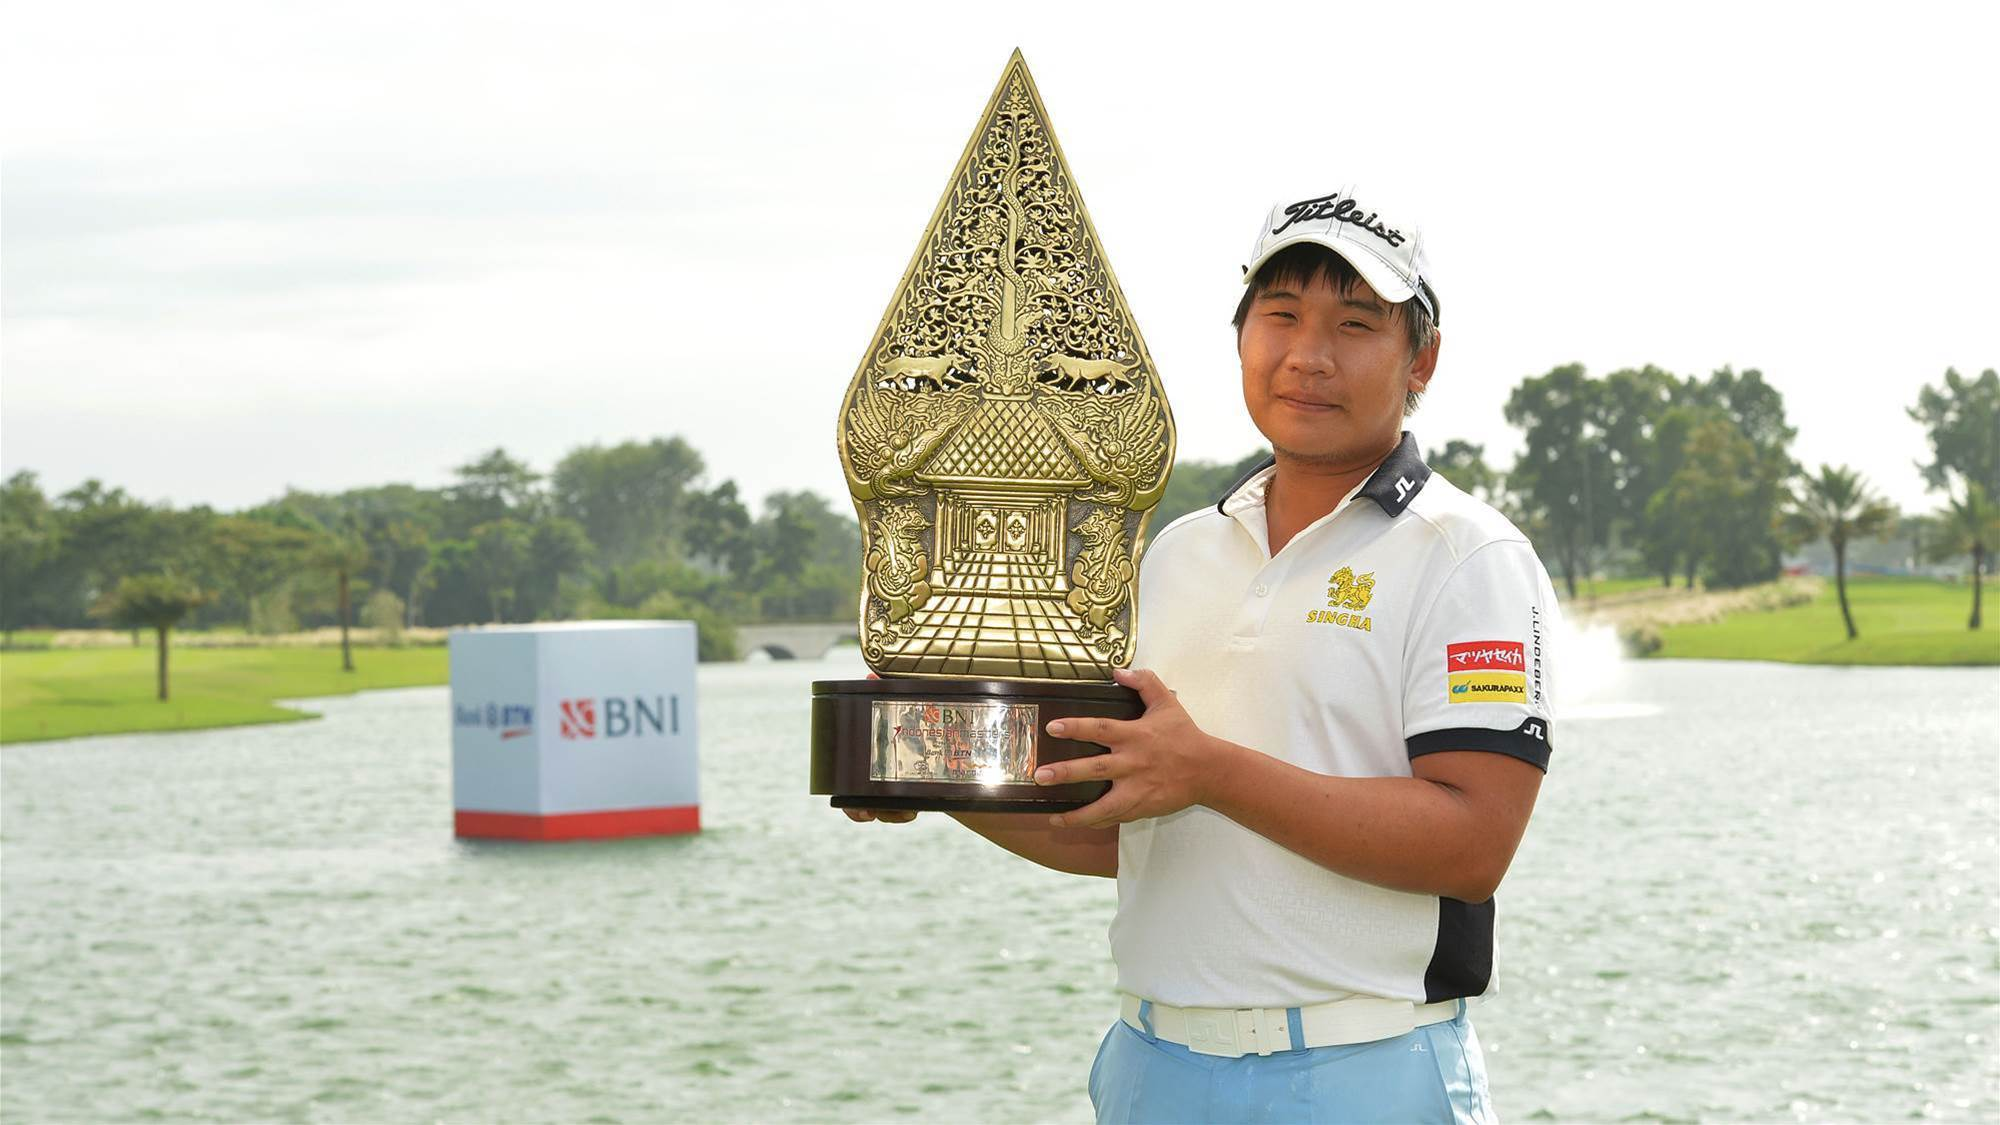 Poom wins second Indonesian Masters title